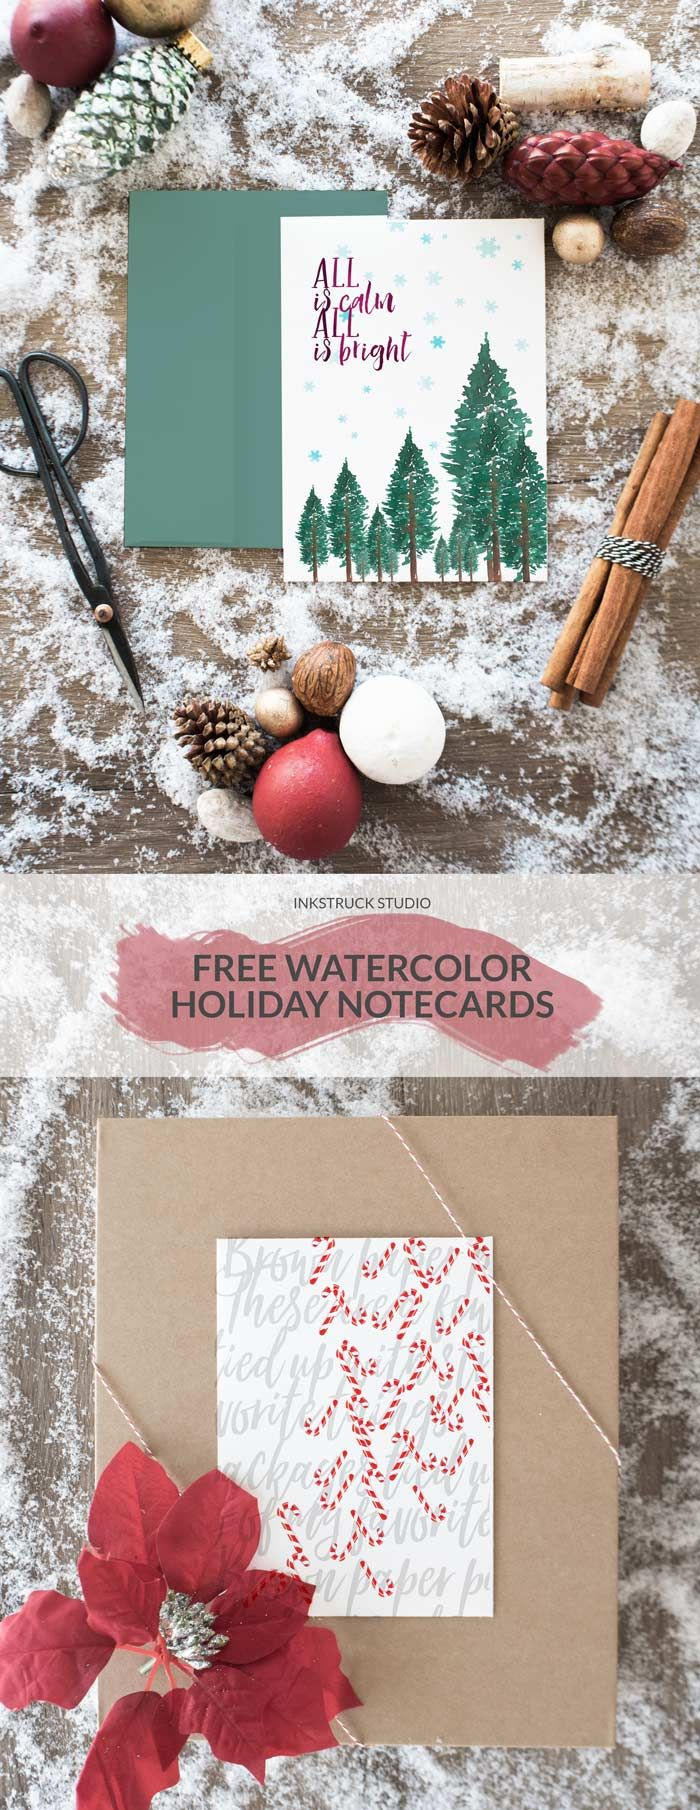 Download free watercolor holiday notecards in two different designs that will save you time ! Contains candy canes and pine trees!